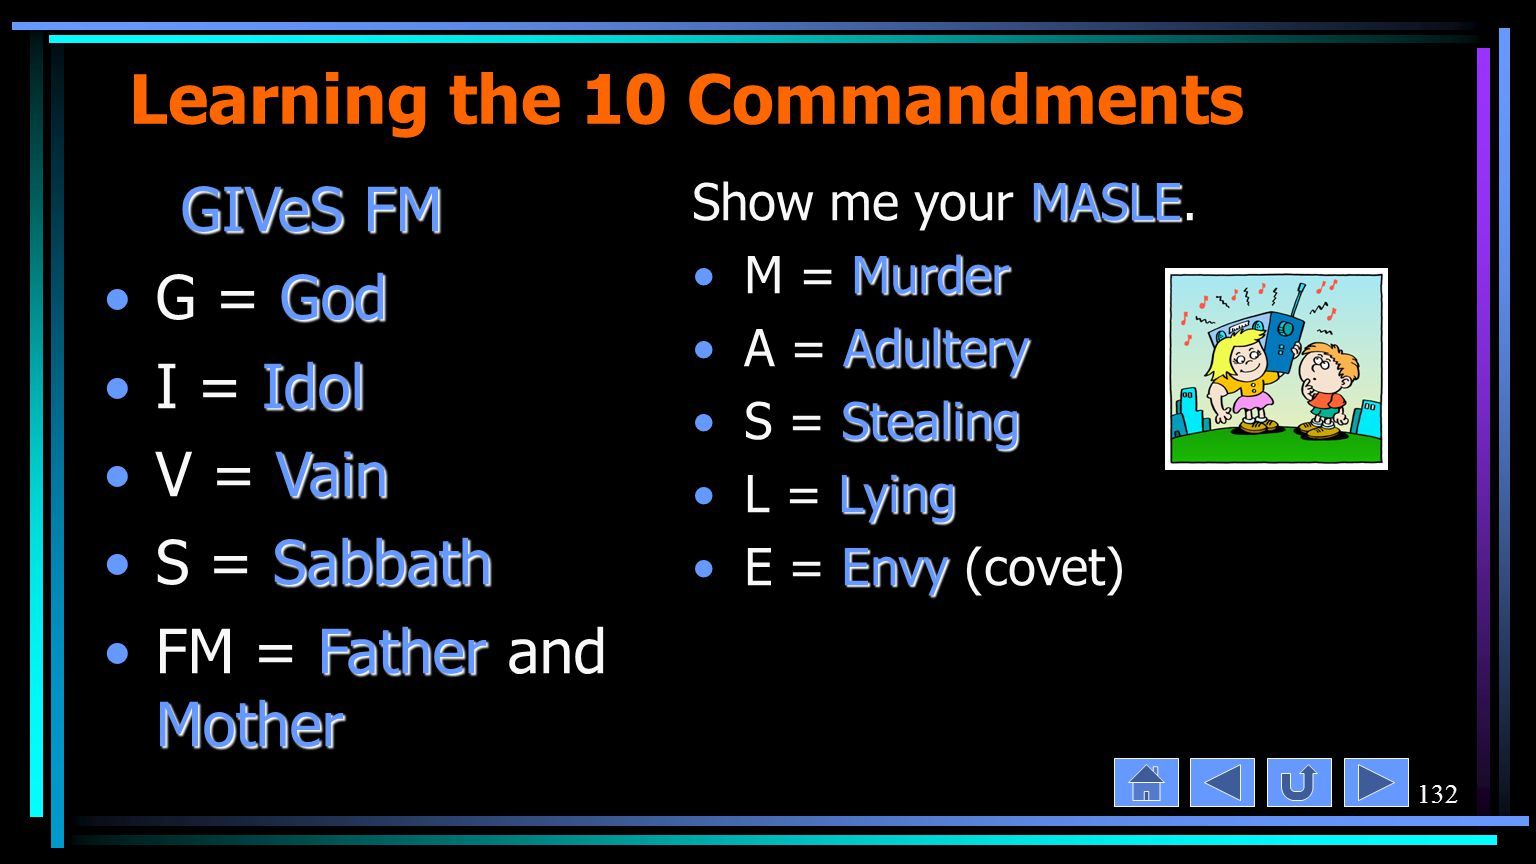 132 Learning the 10 Commandments MASLE Show me your MASLE.